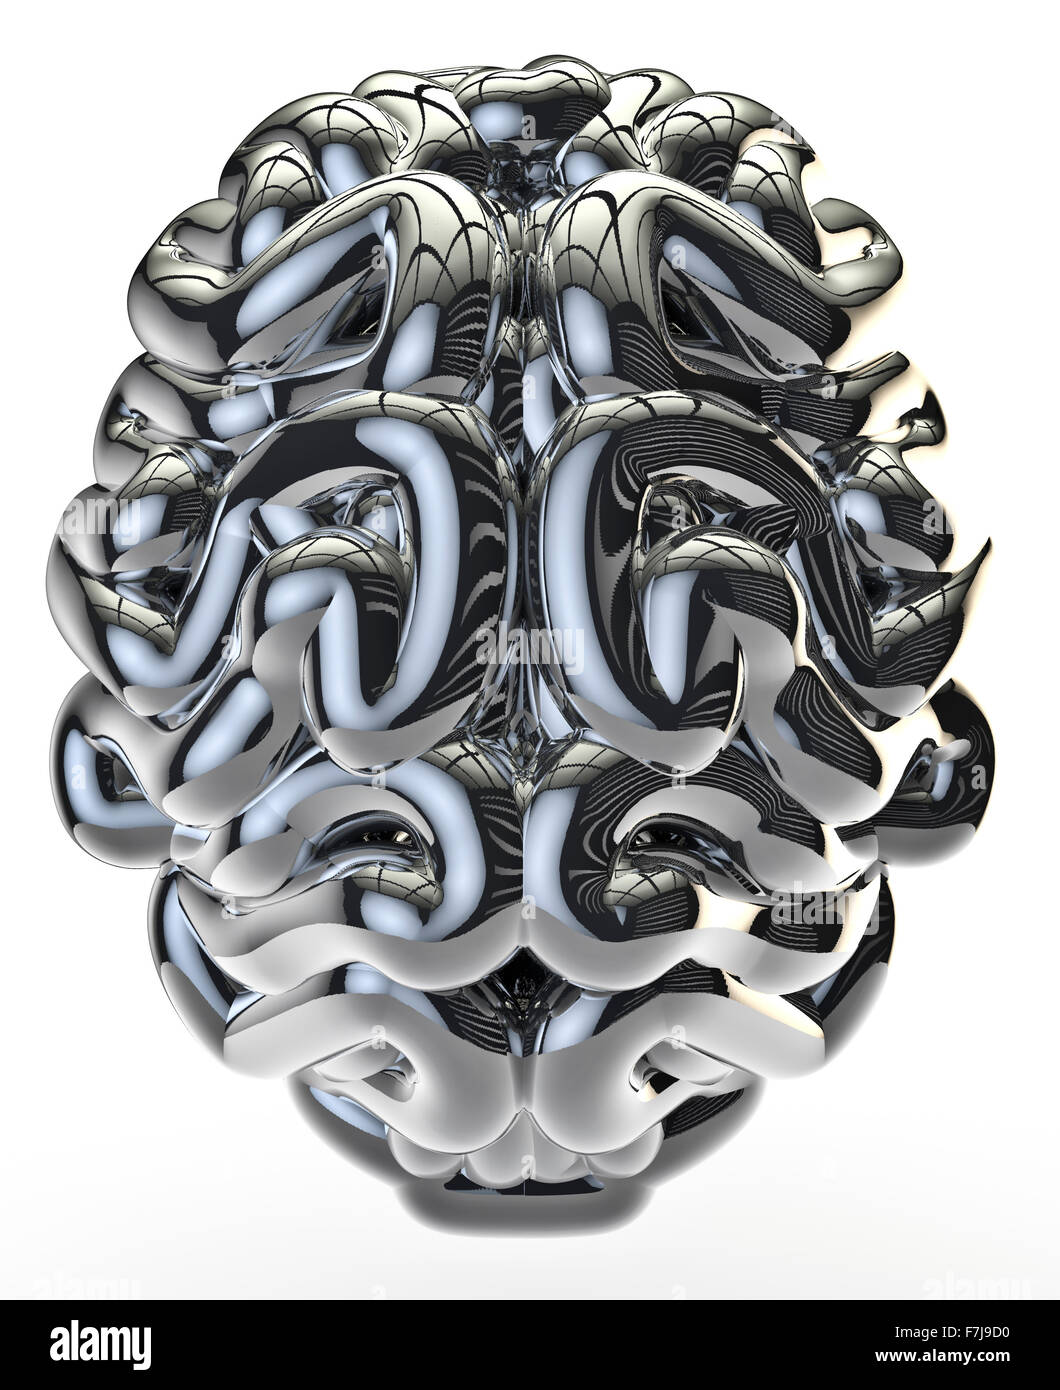 Cerveau Chrome / 3D render of brain isolated on white Banque D'Images